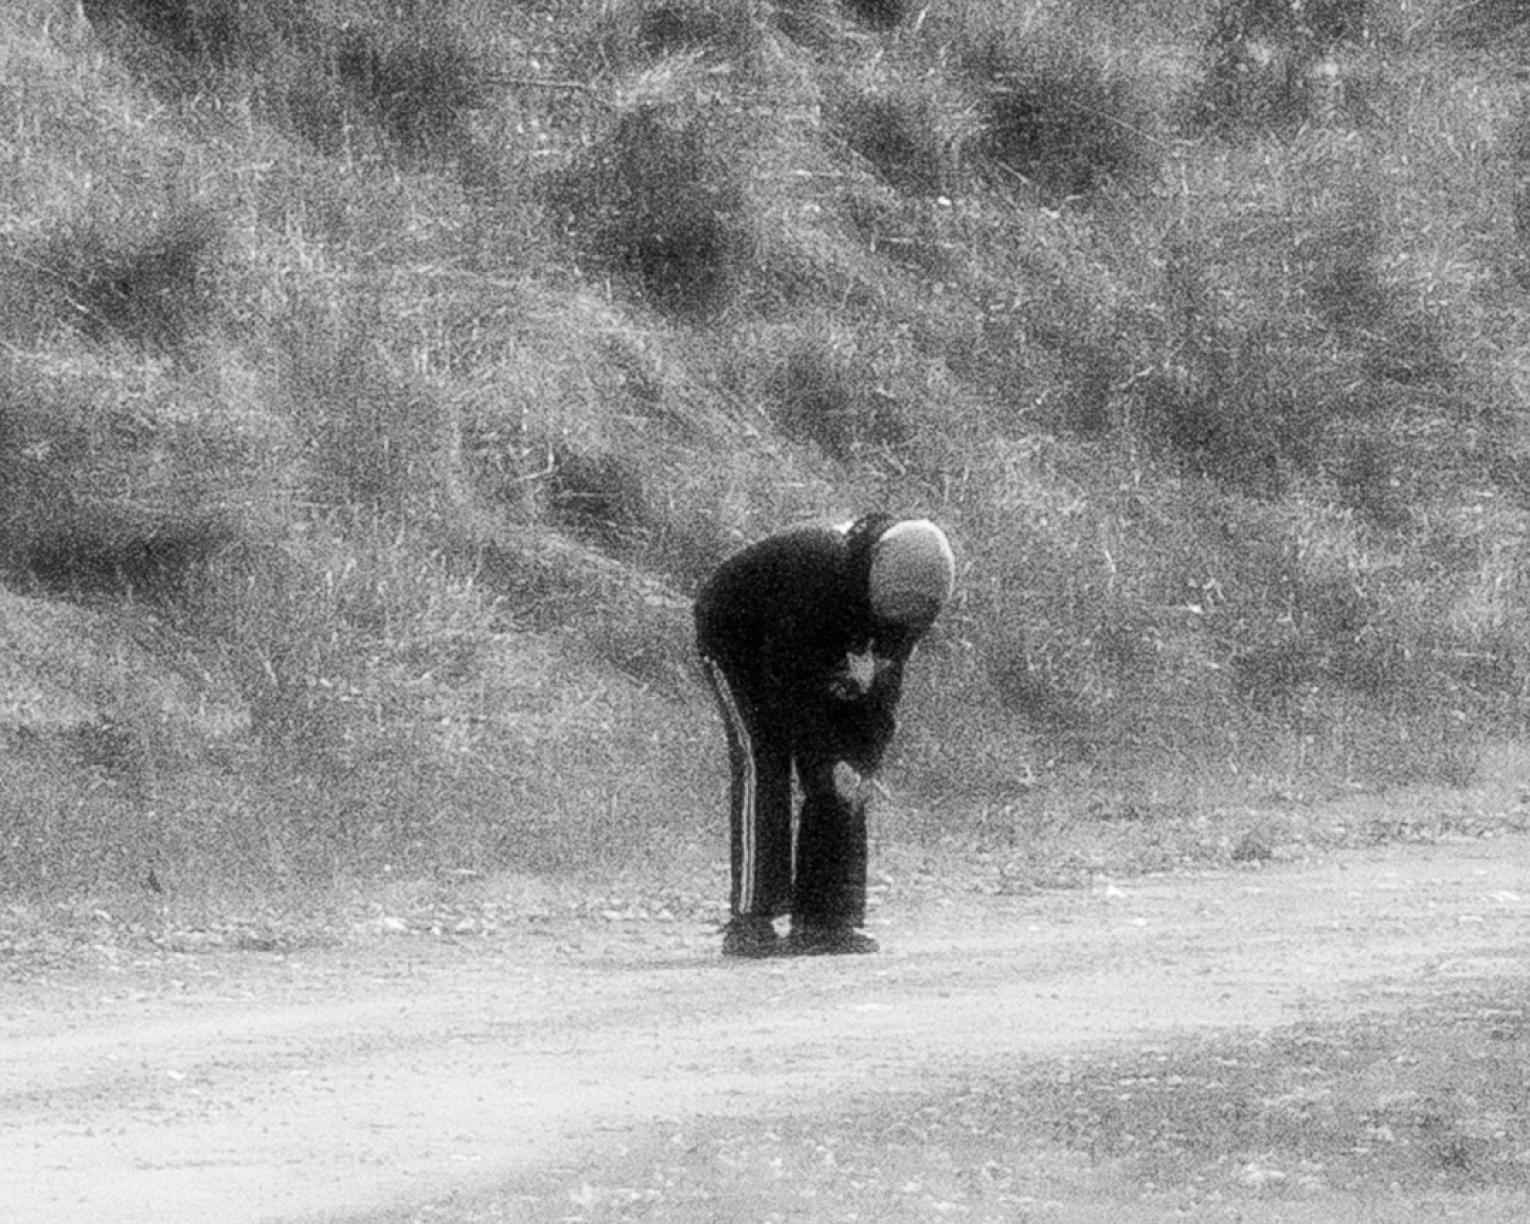 Black and white photo of person bent over to look at something in the road